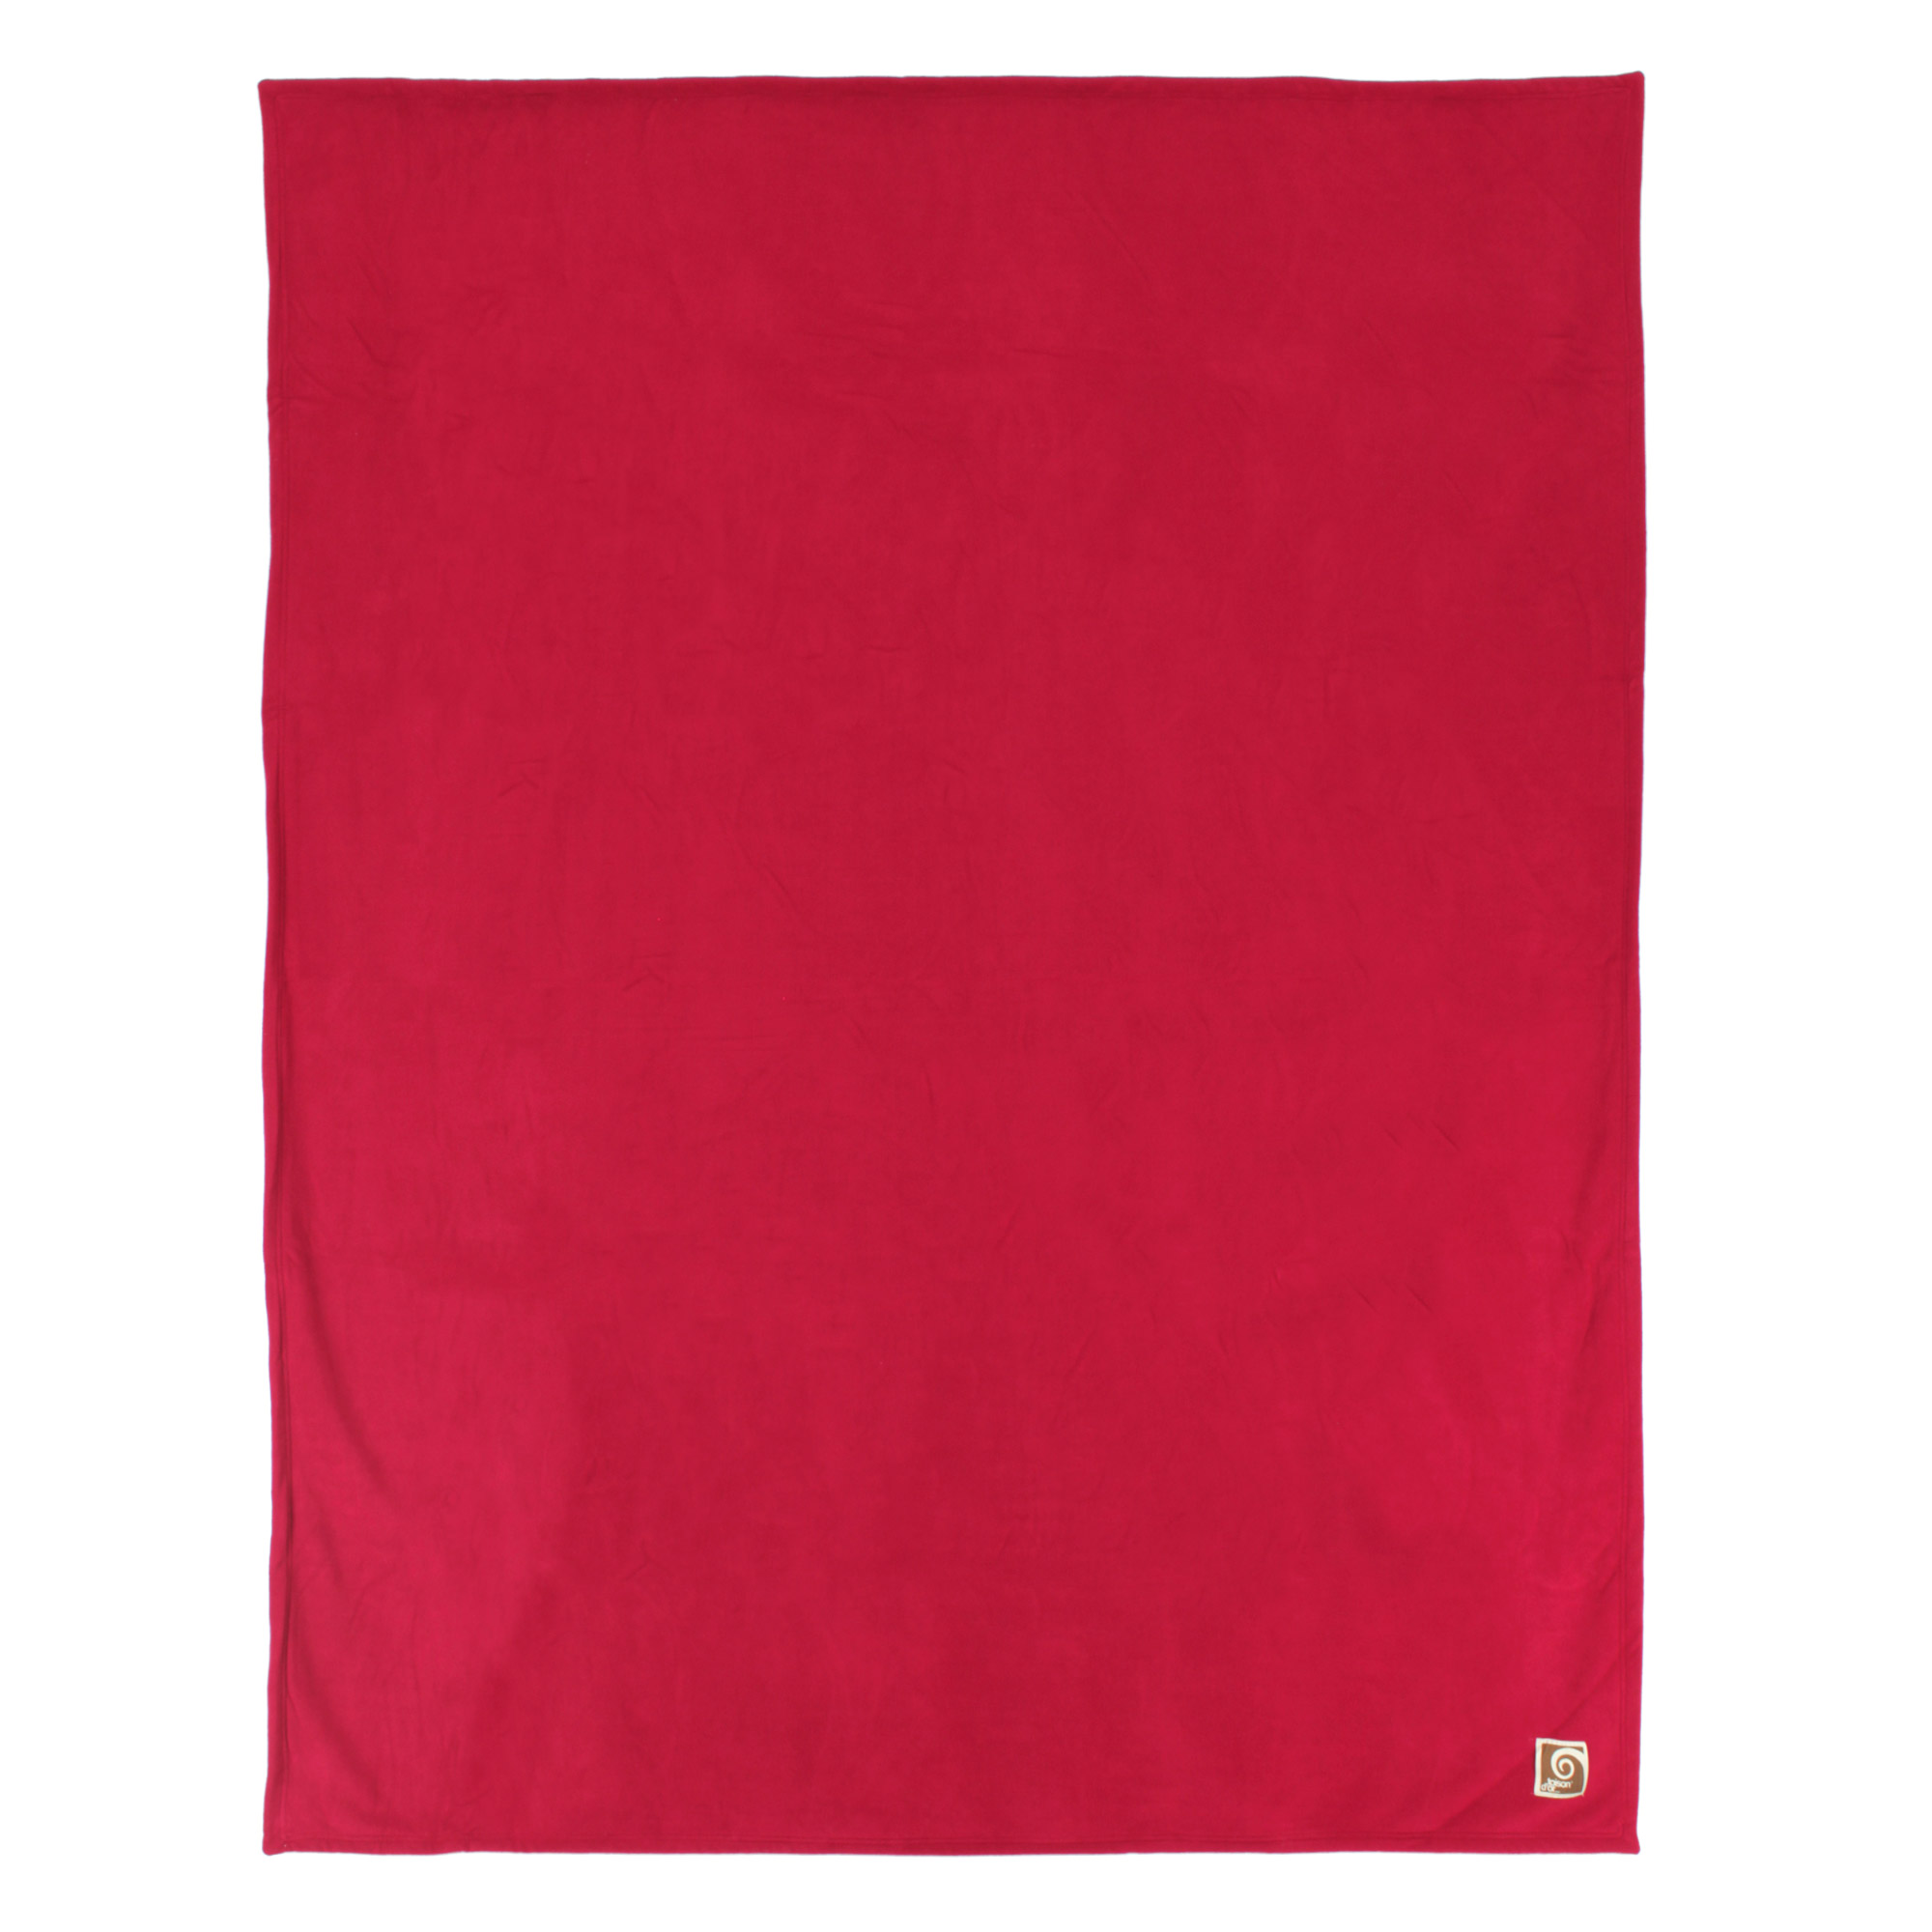 Couverture-polaire-luxe-220x240-100-polyester-430g-m2-NARVIK-Rouge-Framboise